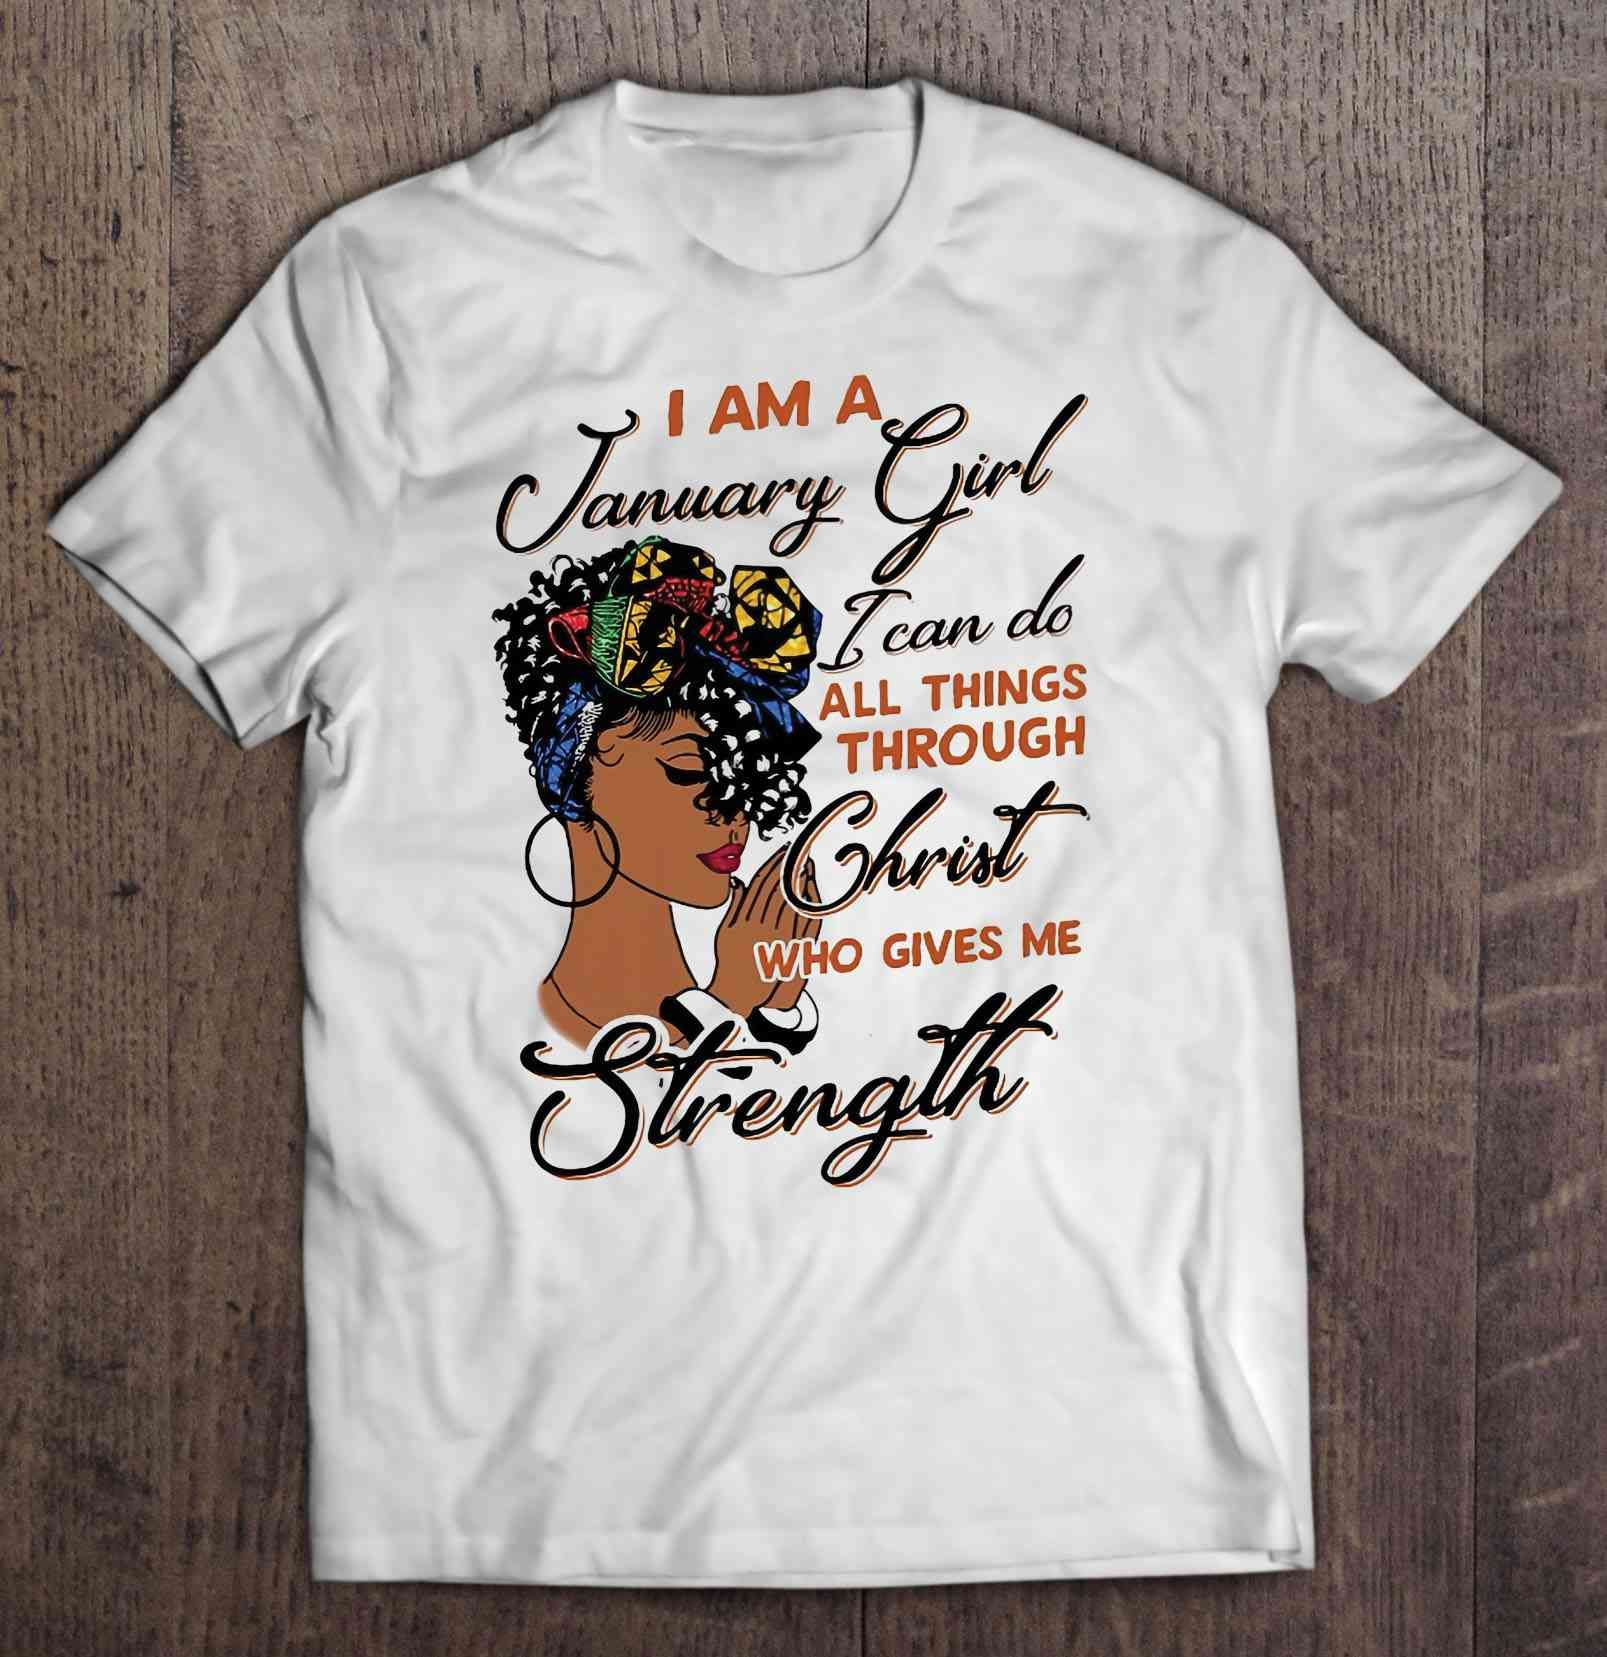 I Am A January Girl I Can Do All Things Through Christ Who Gives Me Strength Black Girl Version Buy For In 2020 Ladies Tee Shirts Black Tee Shirts T